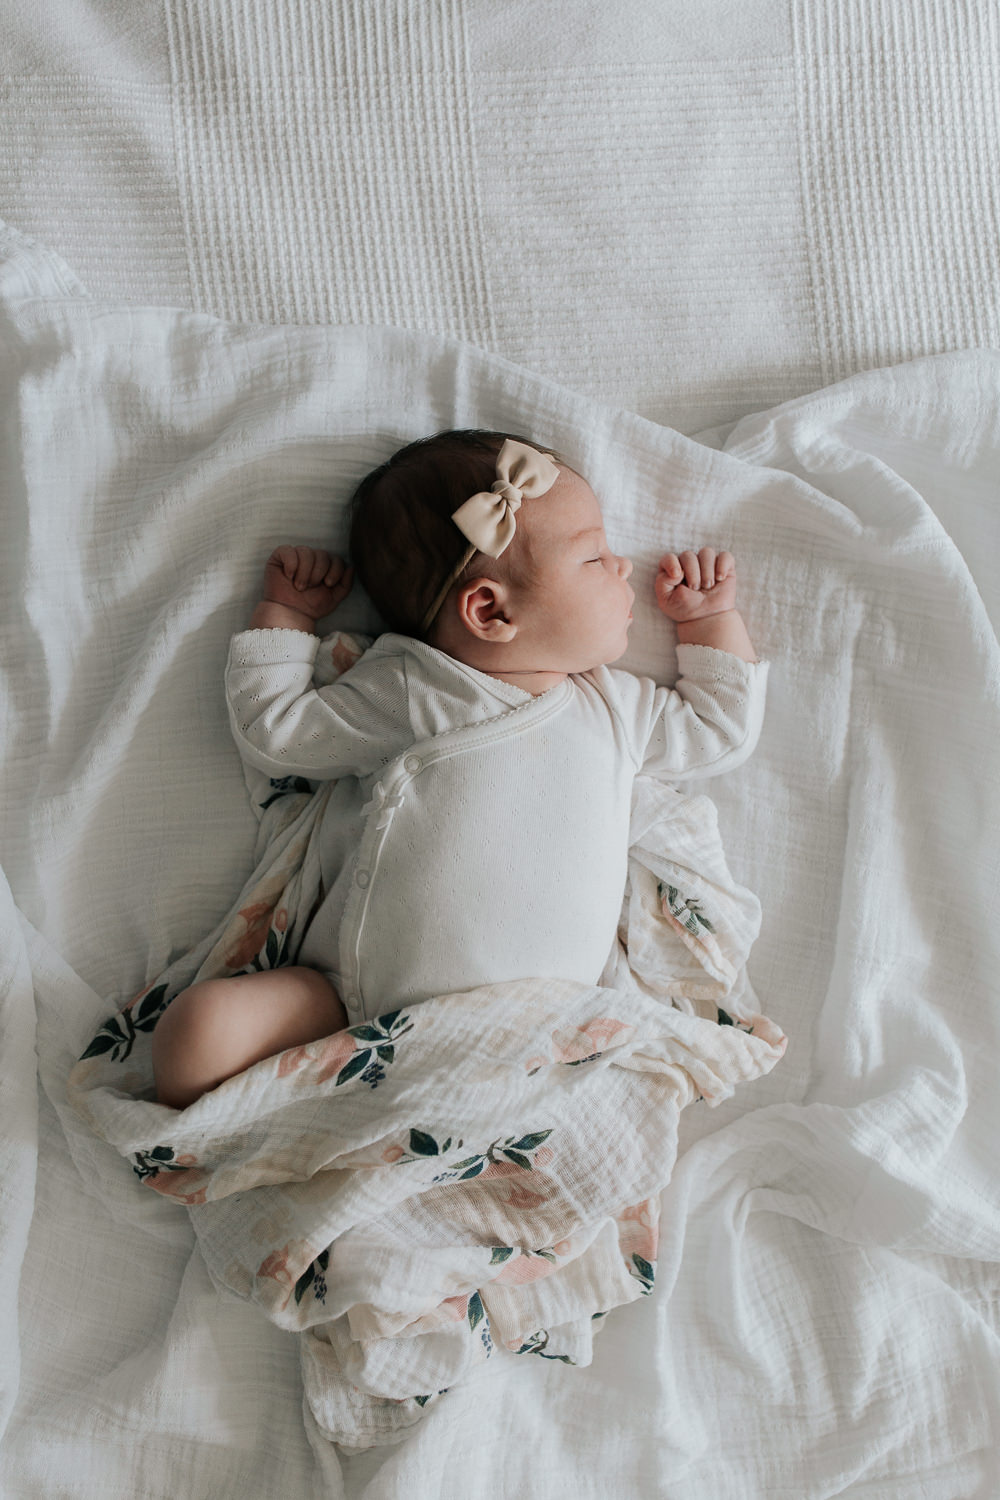 2 week old baby girl with dark hair in white onesie lying on swaddle with soft pink flowers, wearing bow headband asleep on bed, hands near face - Markham In-Home Photography